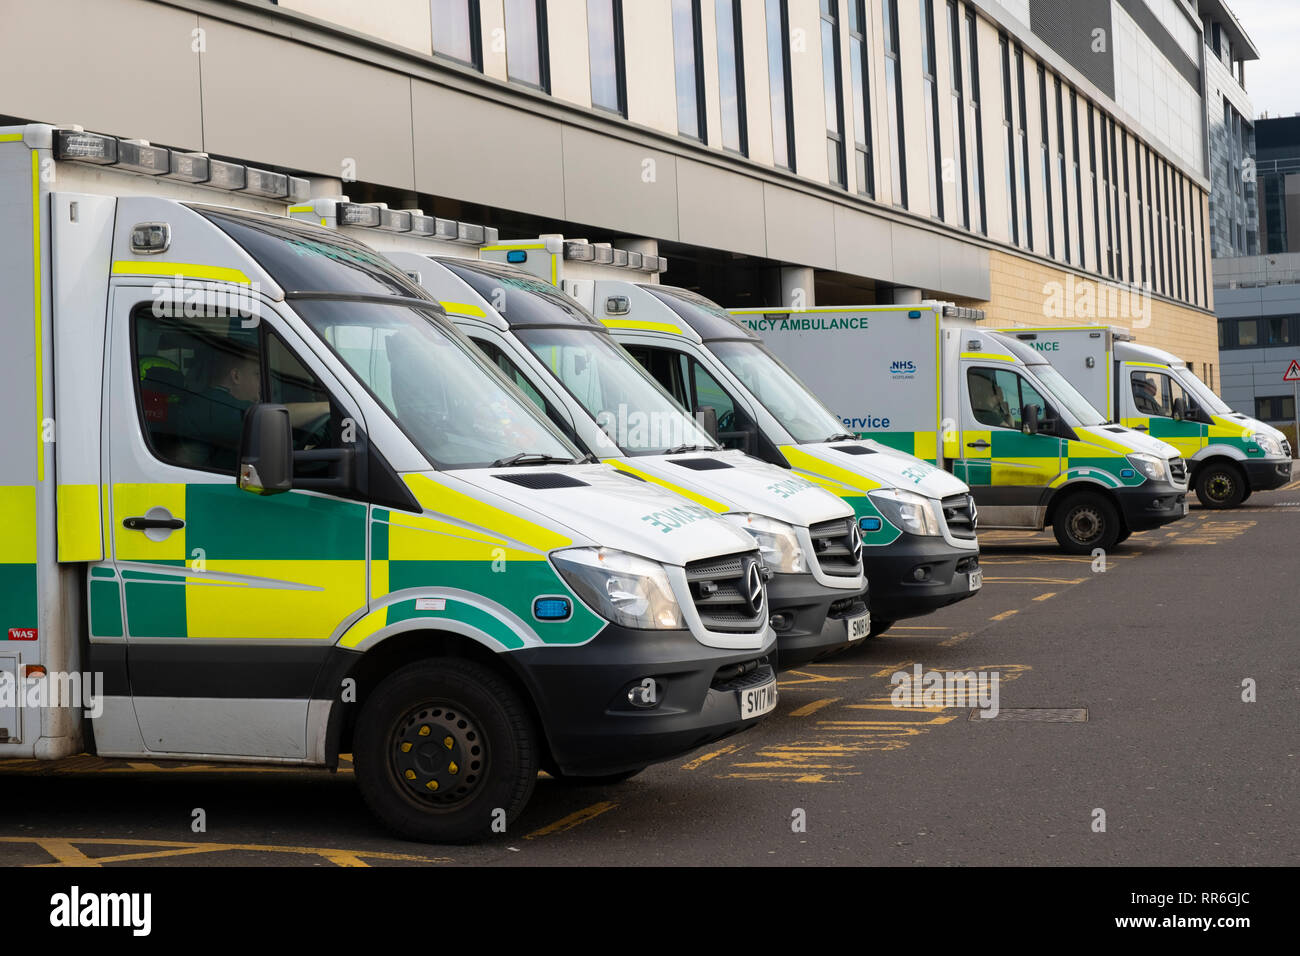 Ambulances parked outside Accident and Emergency department at Queen Elizabeth University Hospital in Glasgow, Scotland, UK - Stock Image